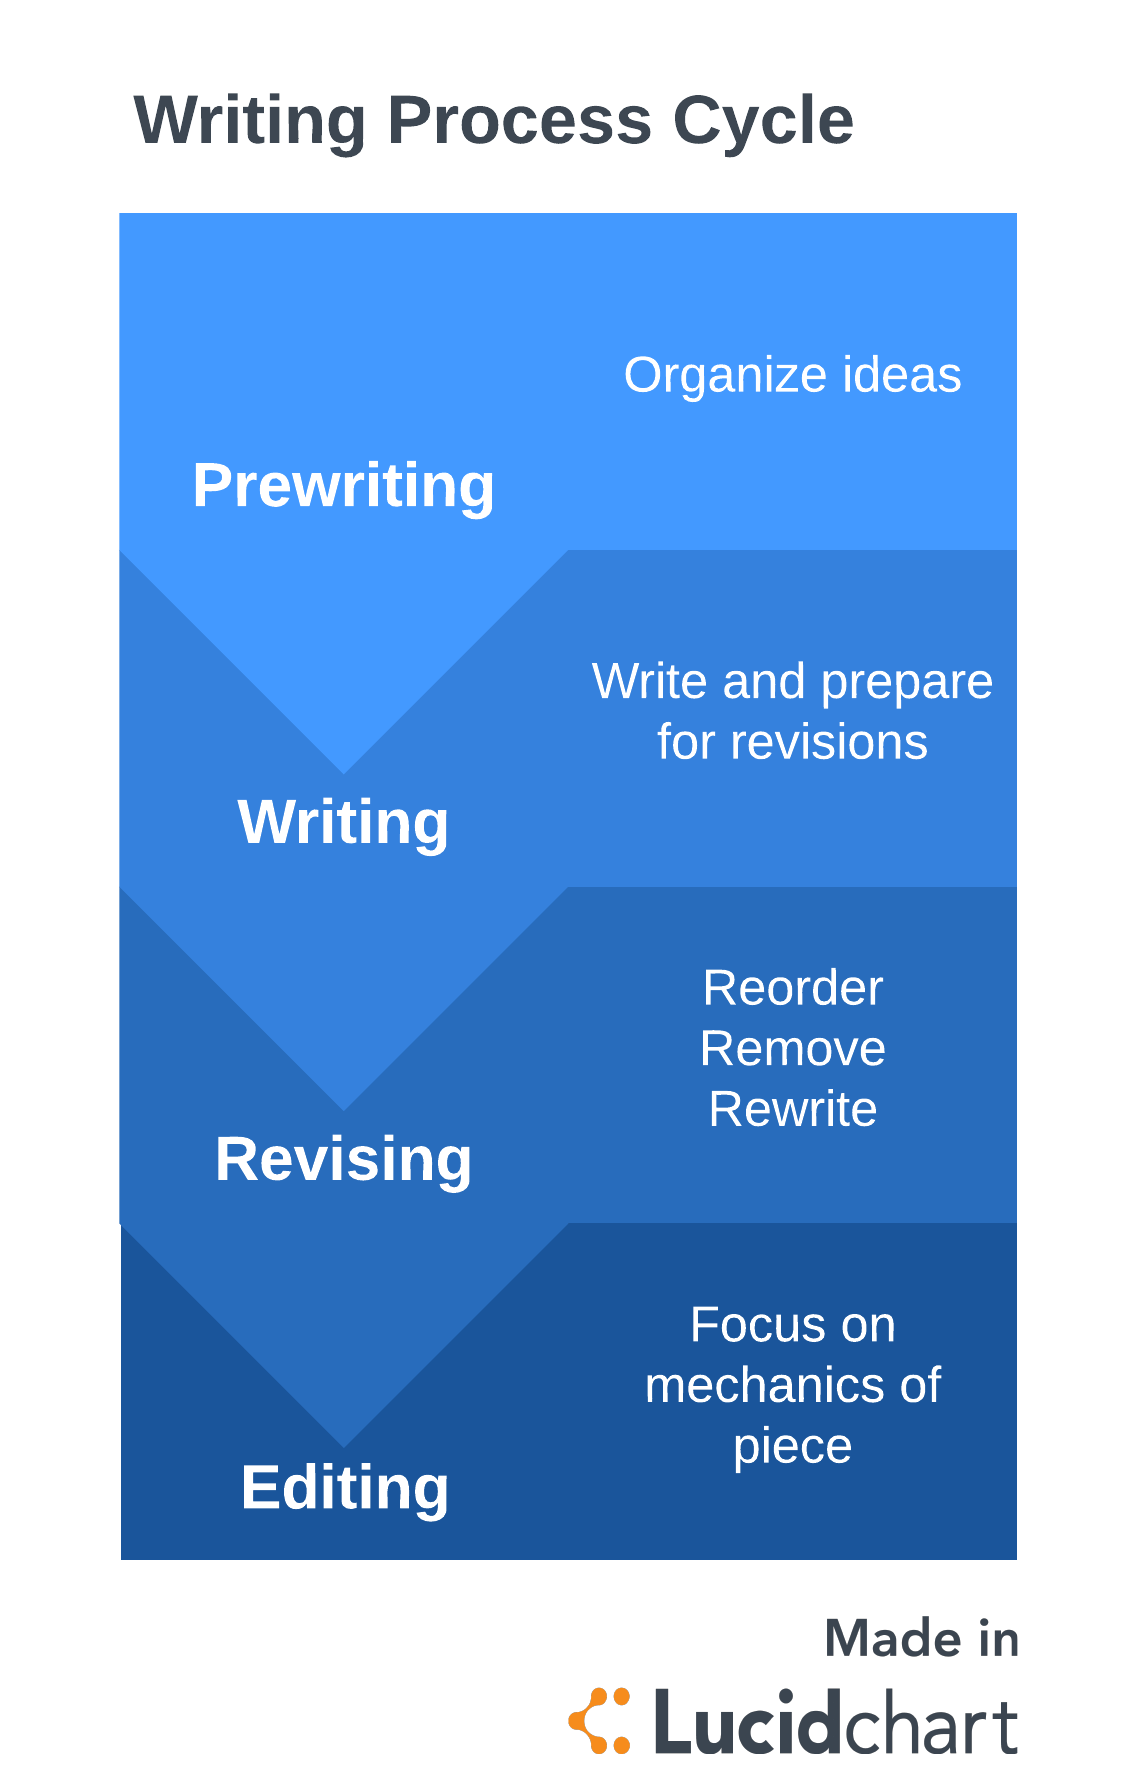 4 Steps To The Writing Process